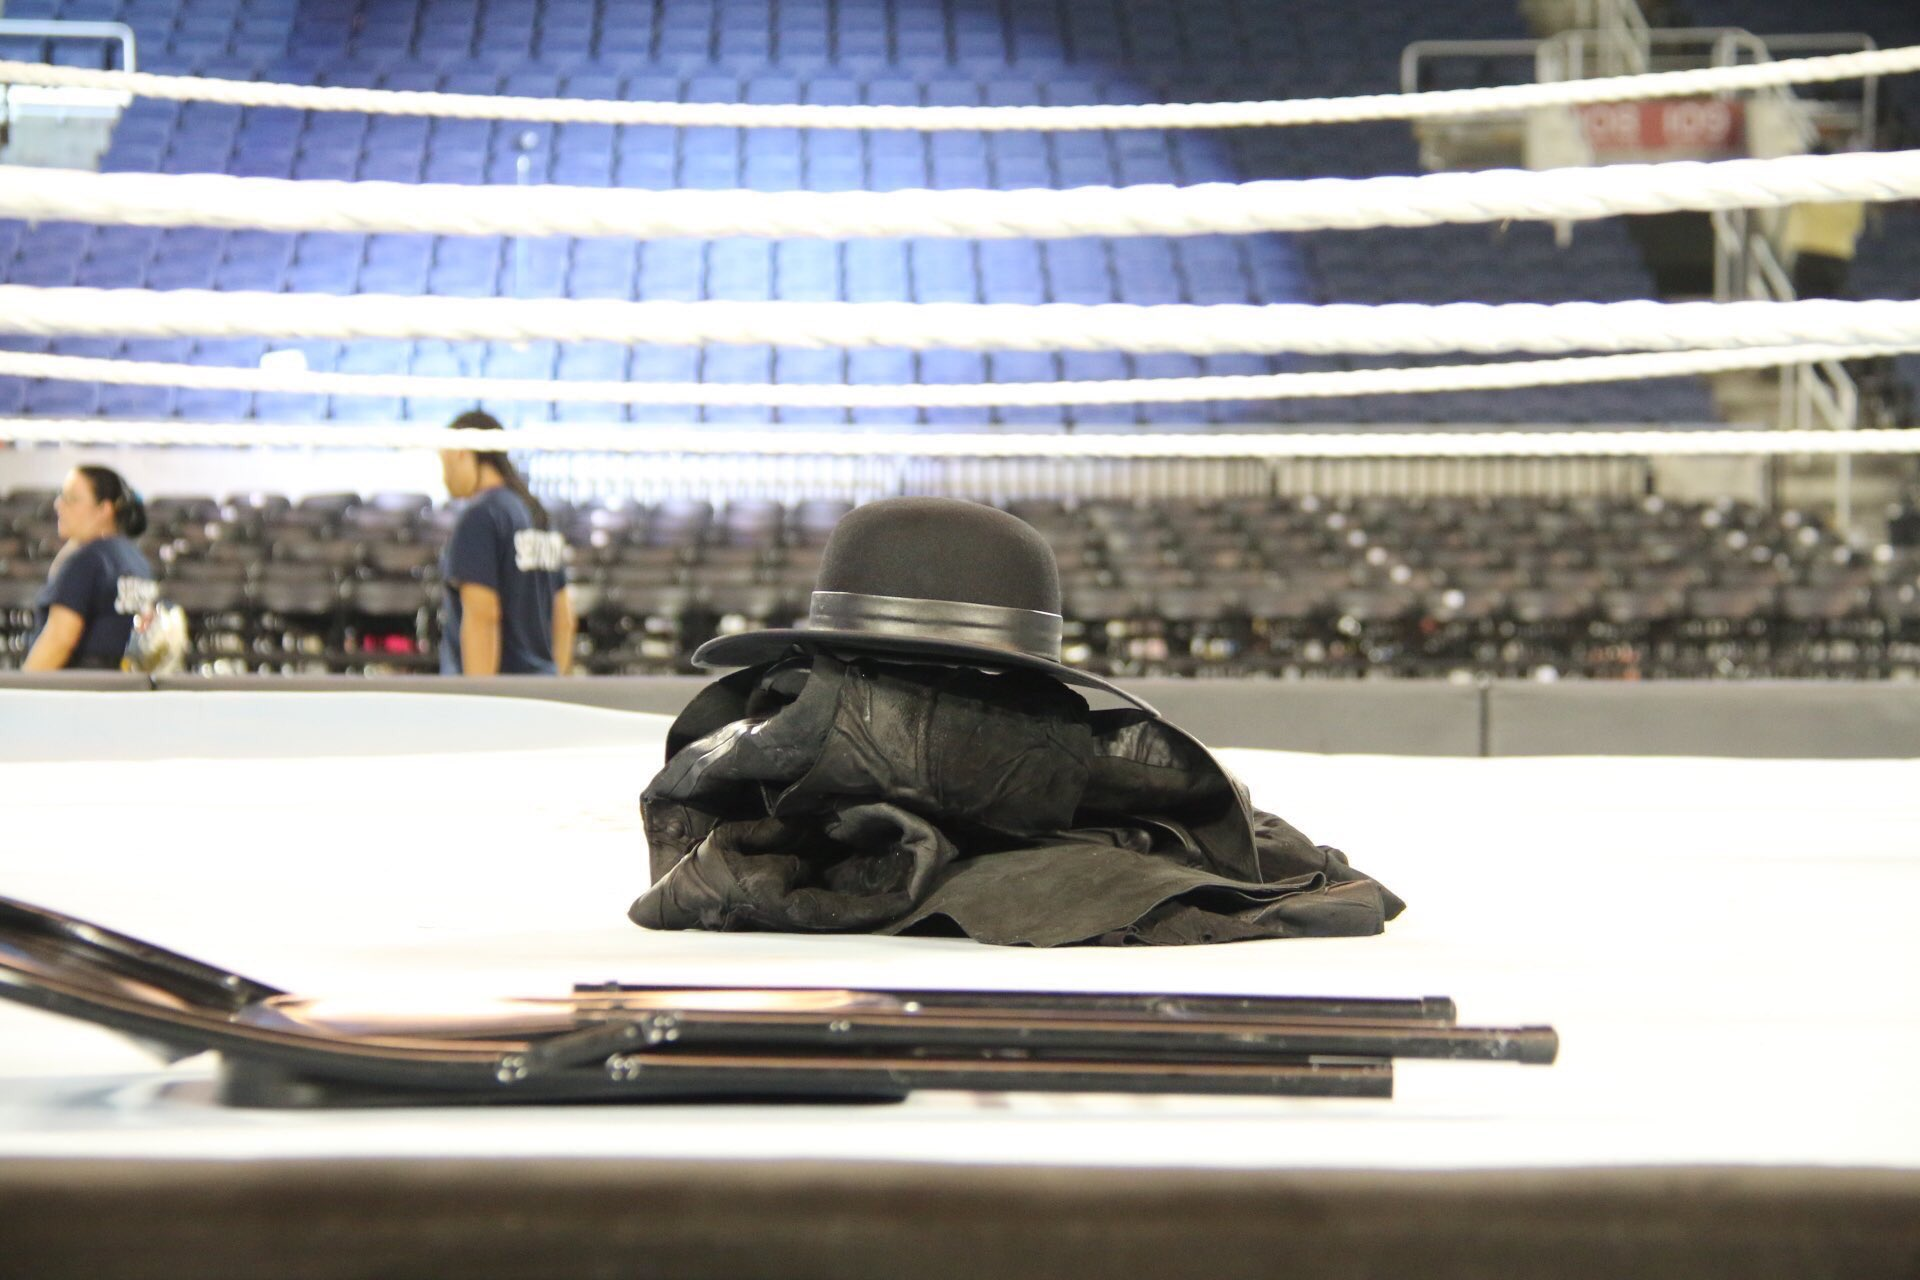 The Undertaker has retired from WWE